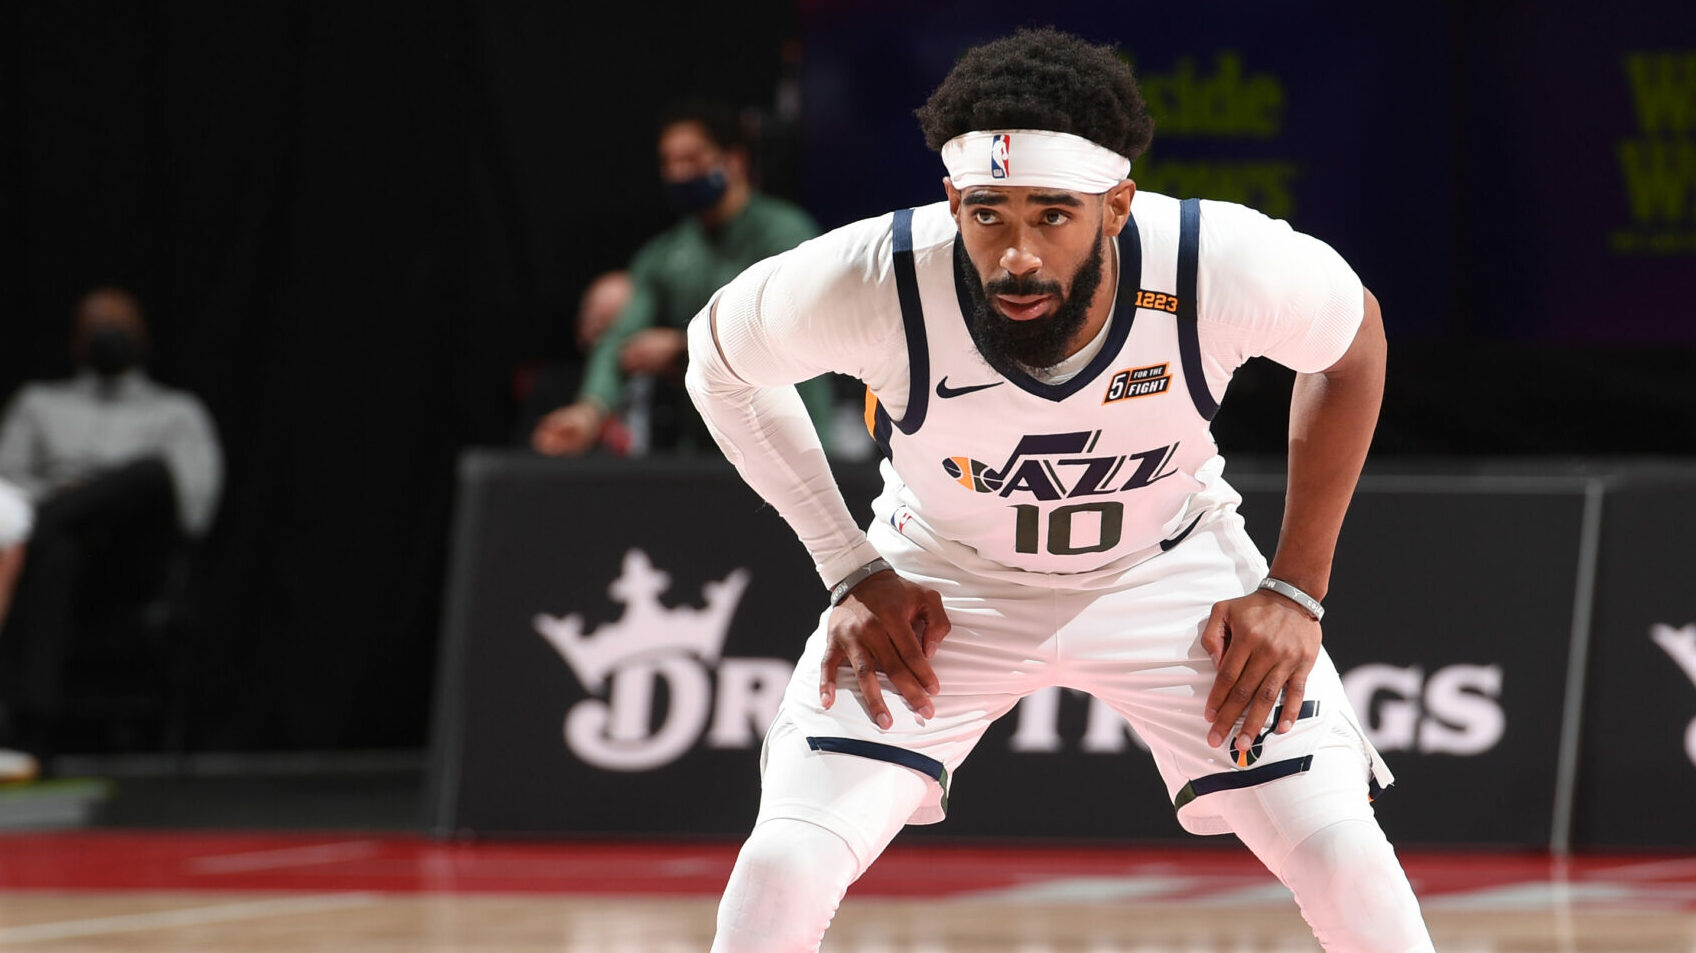 Utah's Conley to replace Phoenix's Booker in 2021 NBA All-Star Game and MTN DEW 3-Point Contest